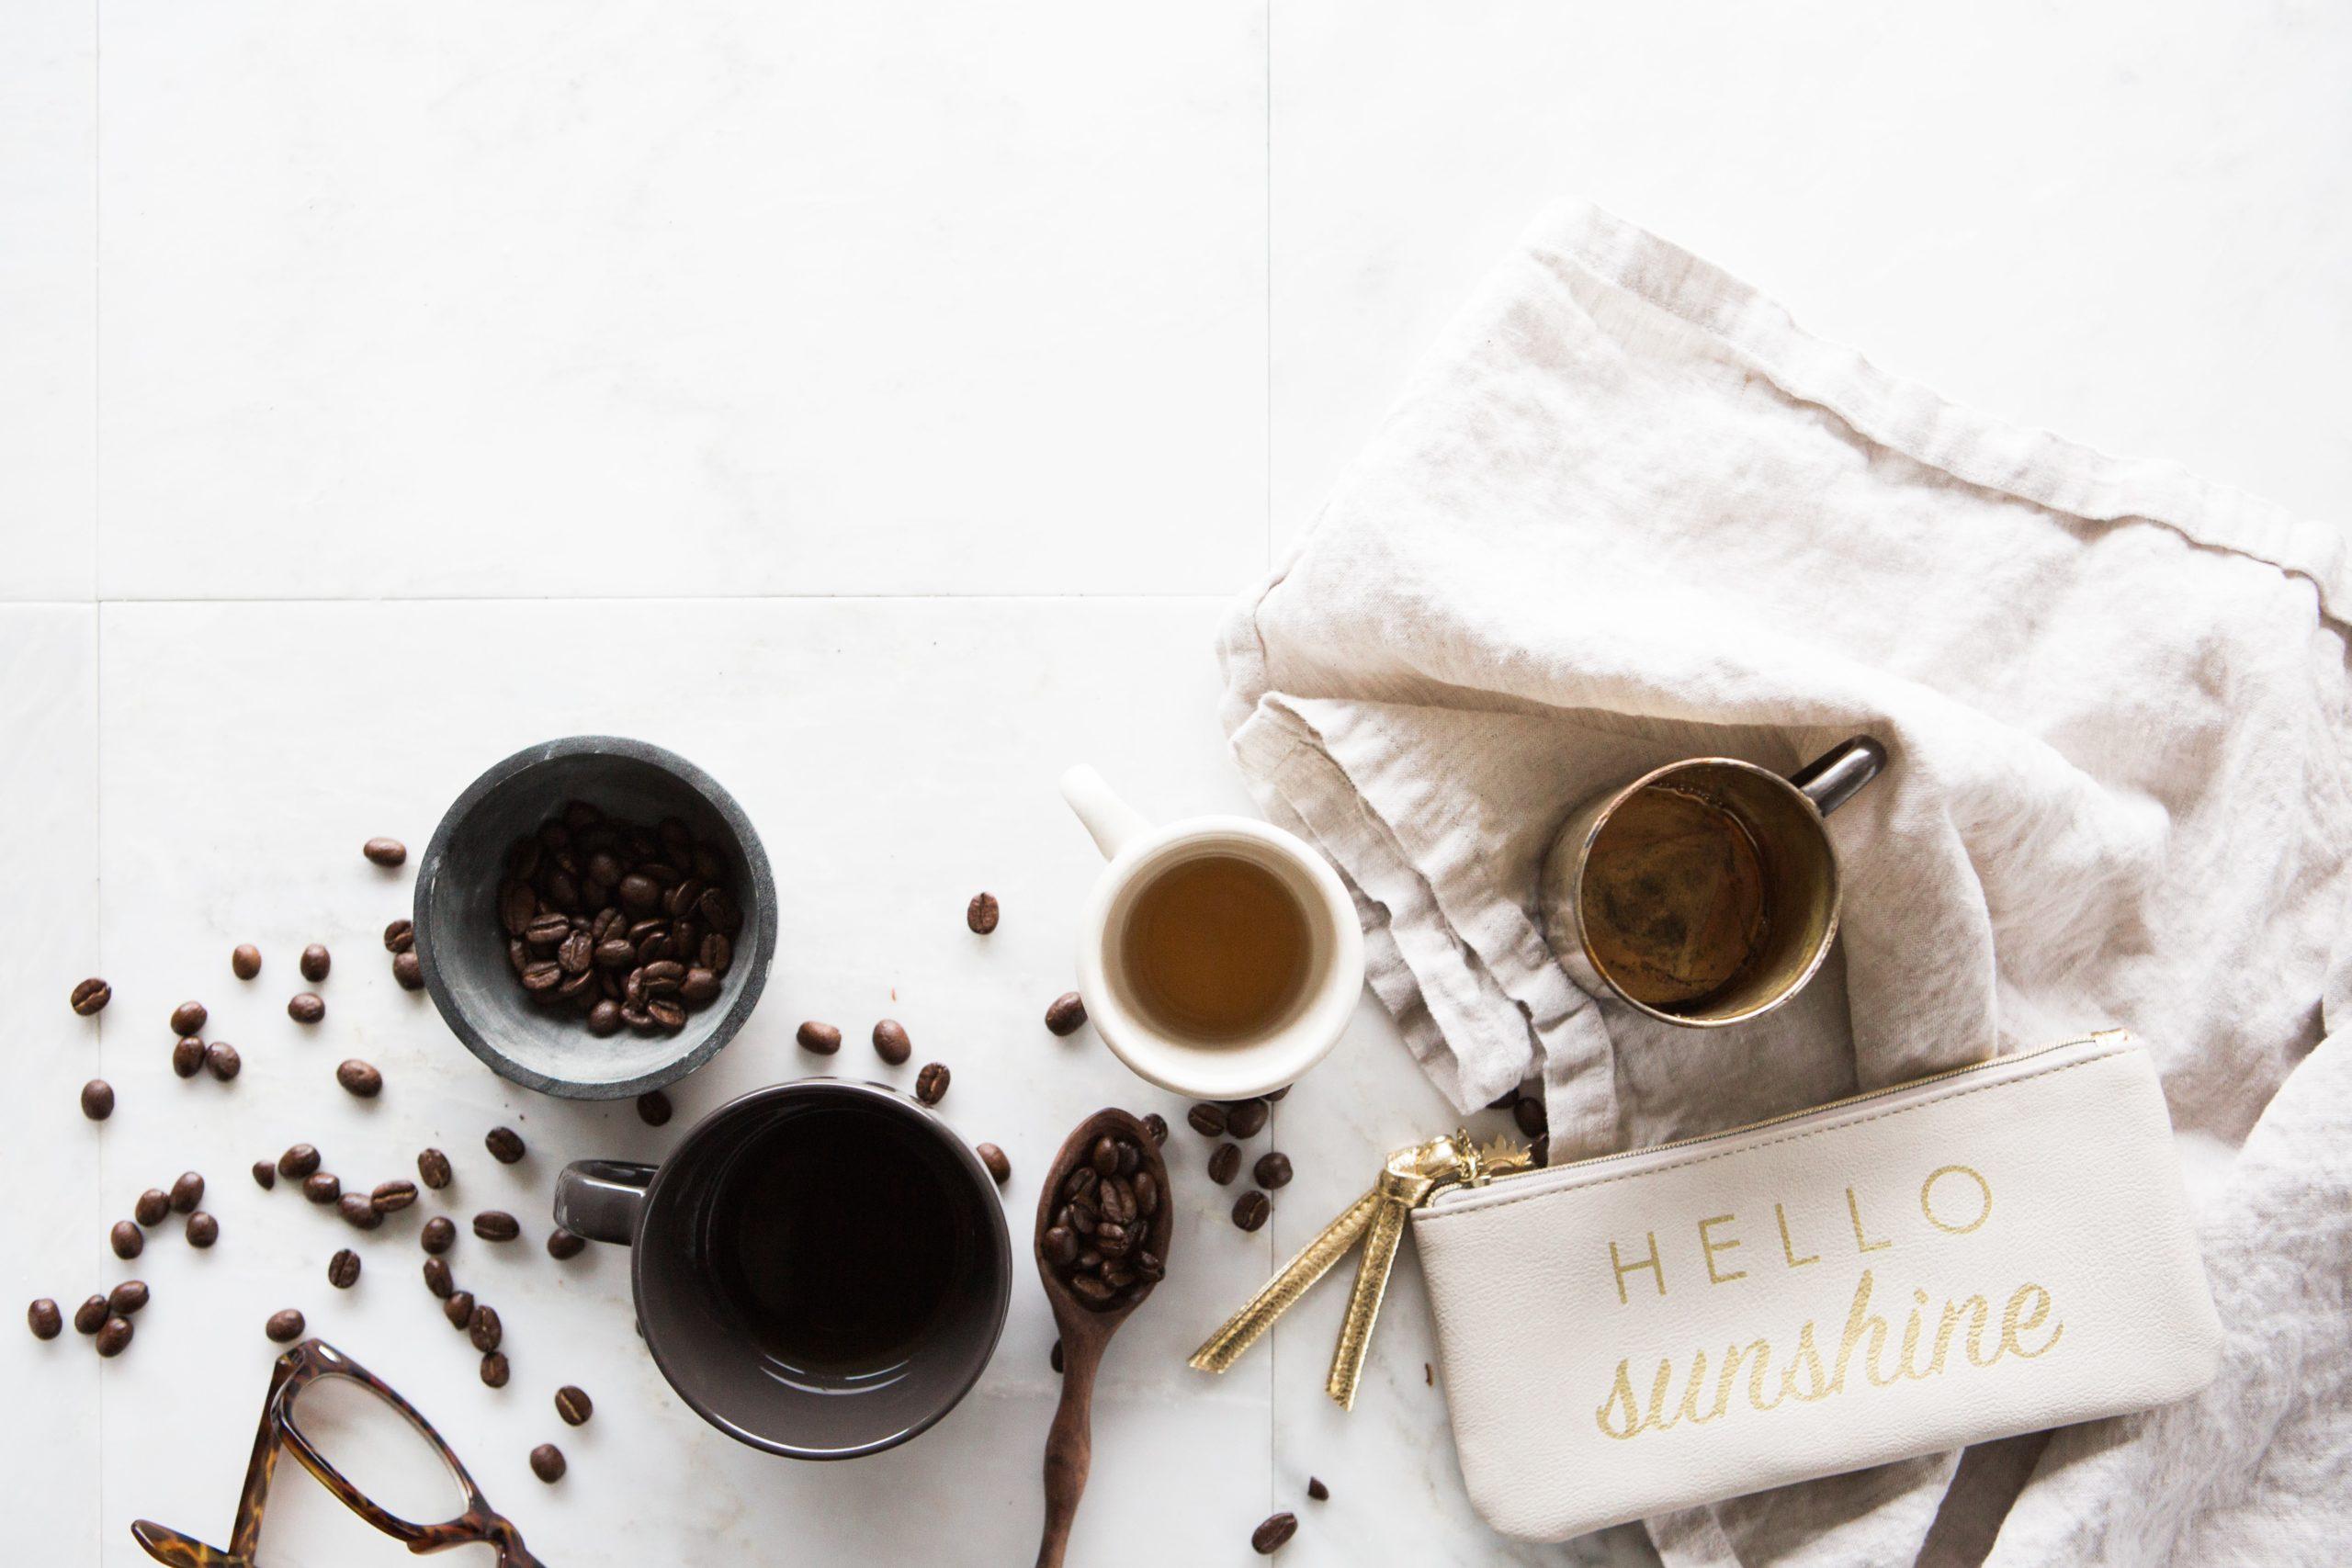 brooke-lark-fANEvguCIXE-unsplash-hello-sunshine-coffee-cups-beans